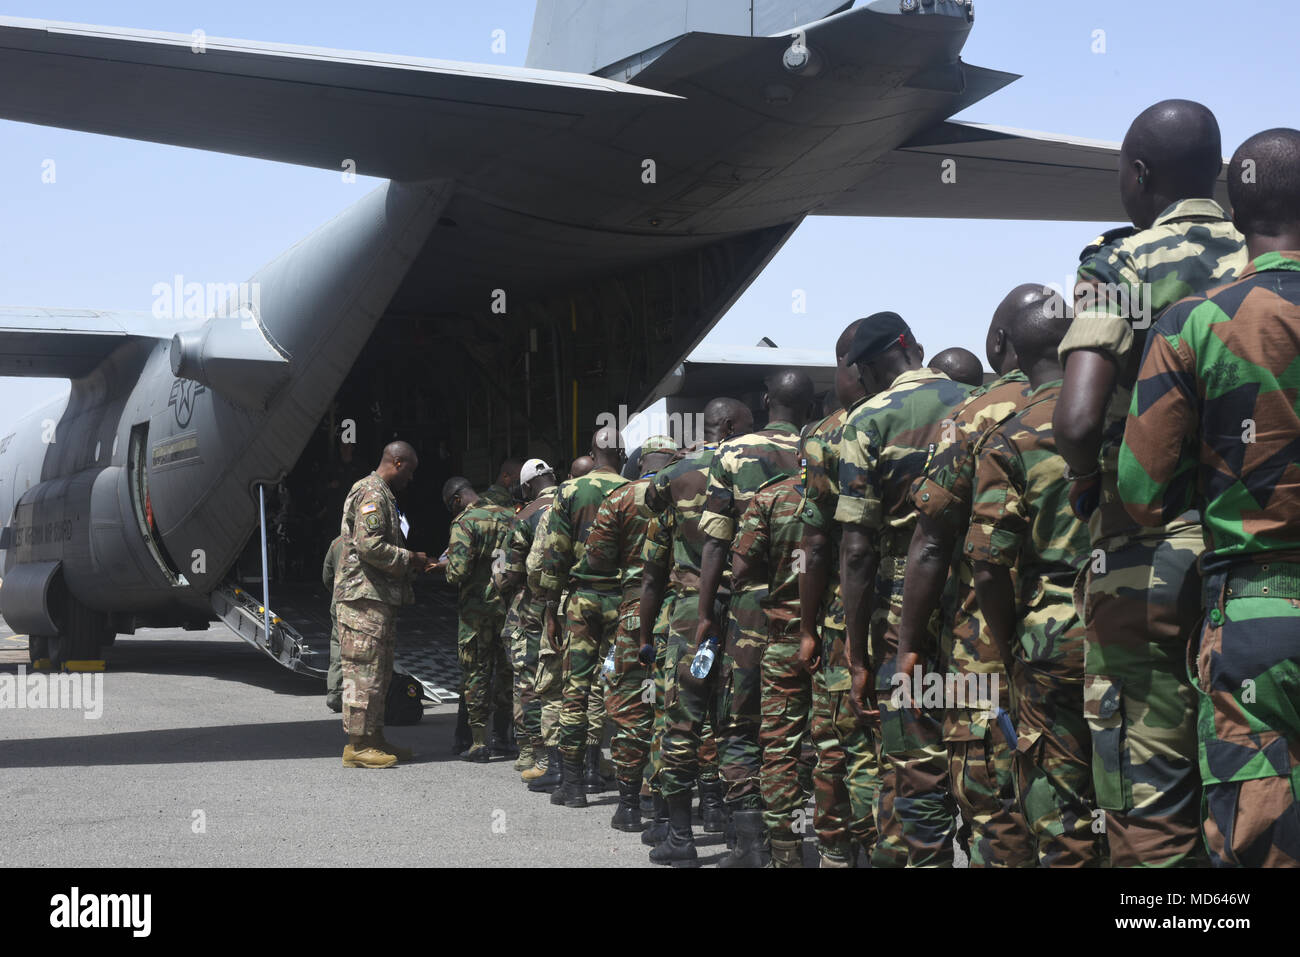 Participants of African Partnership Flight Senegal prepare to board a C-130H Hercules, assigned to the 130th Airlift Wing, West Virginia Air National Guard, at Captain Andalla Cissé Air Base, Senegal, March 22, 2018. The APF program is U.S. Air Forces in Africa's premier security cooperation program with African partner nations to improve professional military aviation knowledge and skills. (U.S. Air Force photo by Airman 1st Class Eli Chevalier) - Stock Image